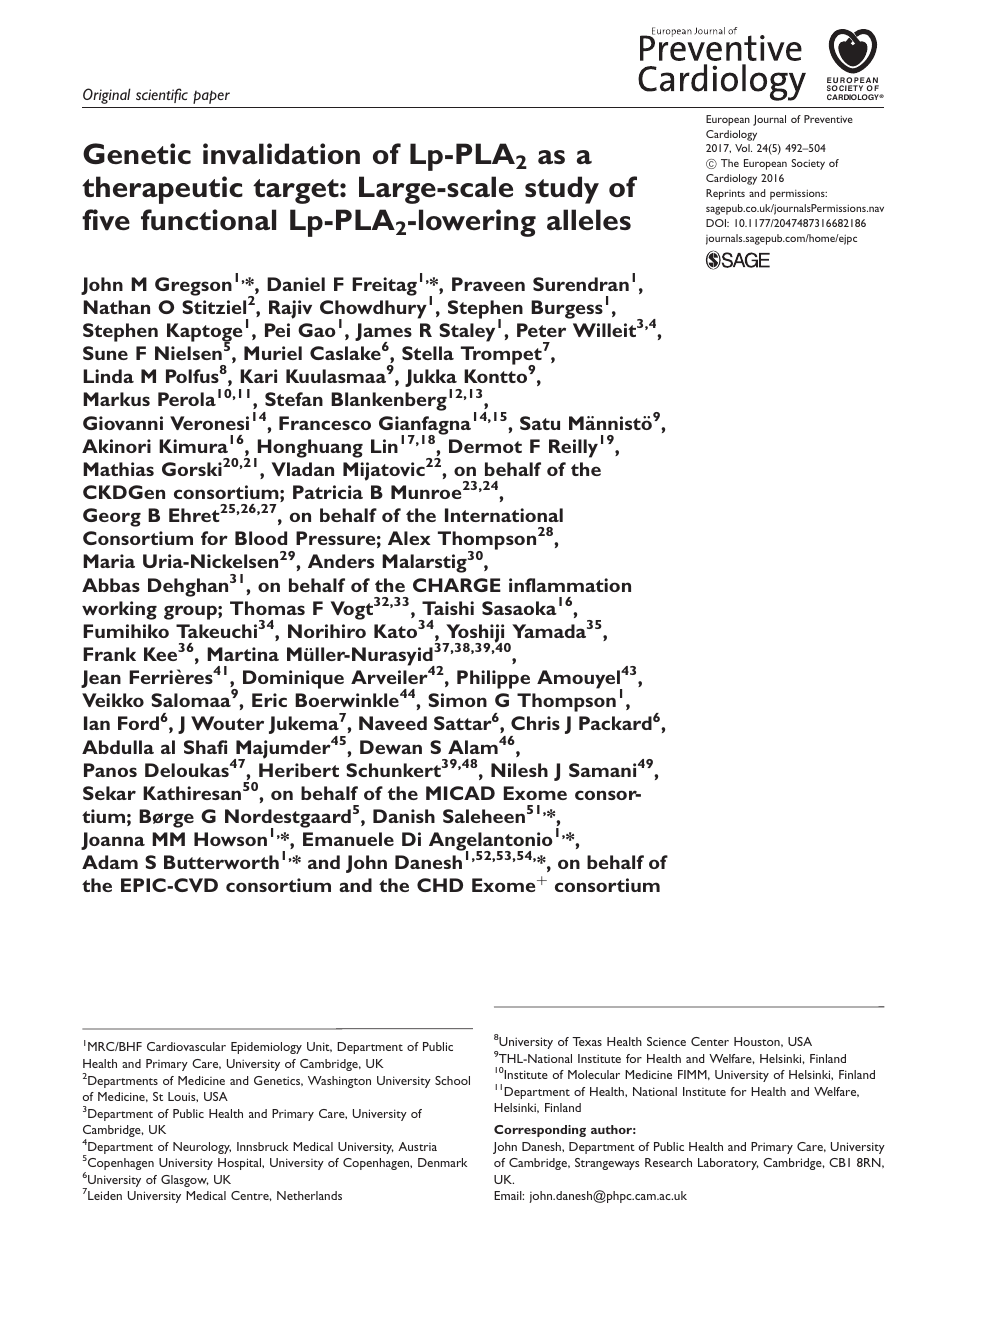 Genetic invalidation of Lp-PLA2 as a therapeutic target